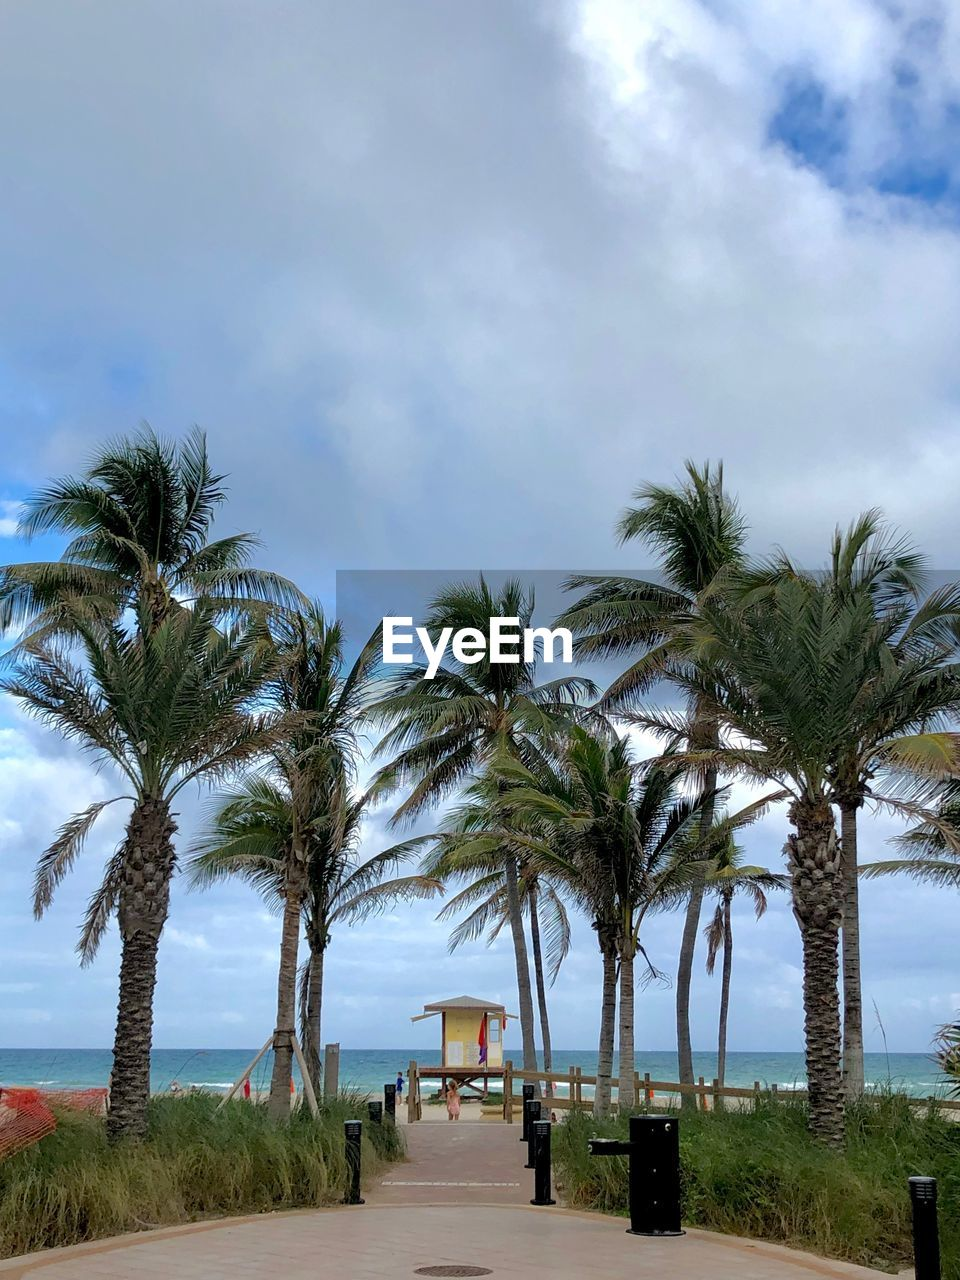 plant, palm tree, tree, tropical climate, sky, cloud - sky, nature, the way forward, growth, direction, day, land, road, outdoors, sea, water, transportation, beach, in a row, treelined, no people, tropical tree